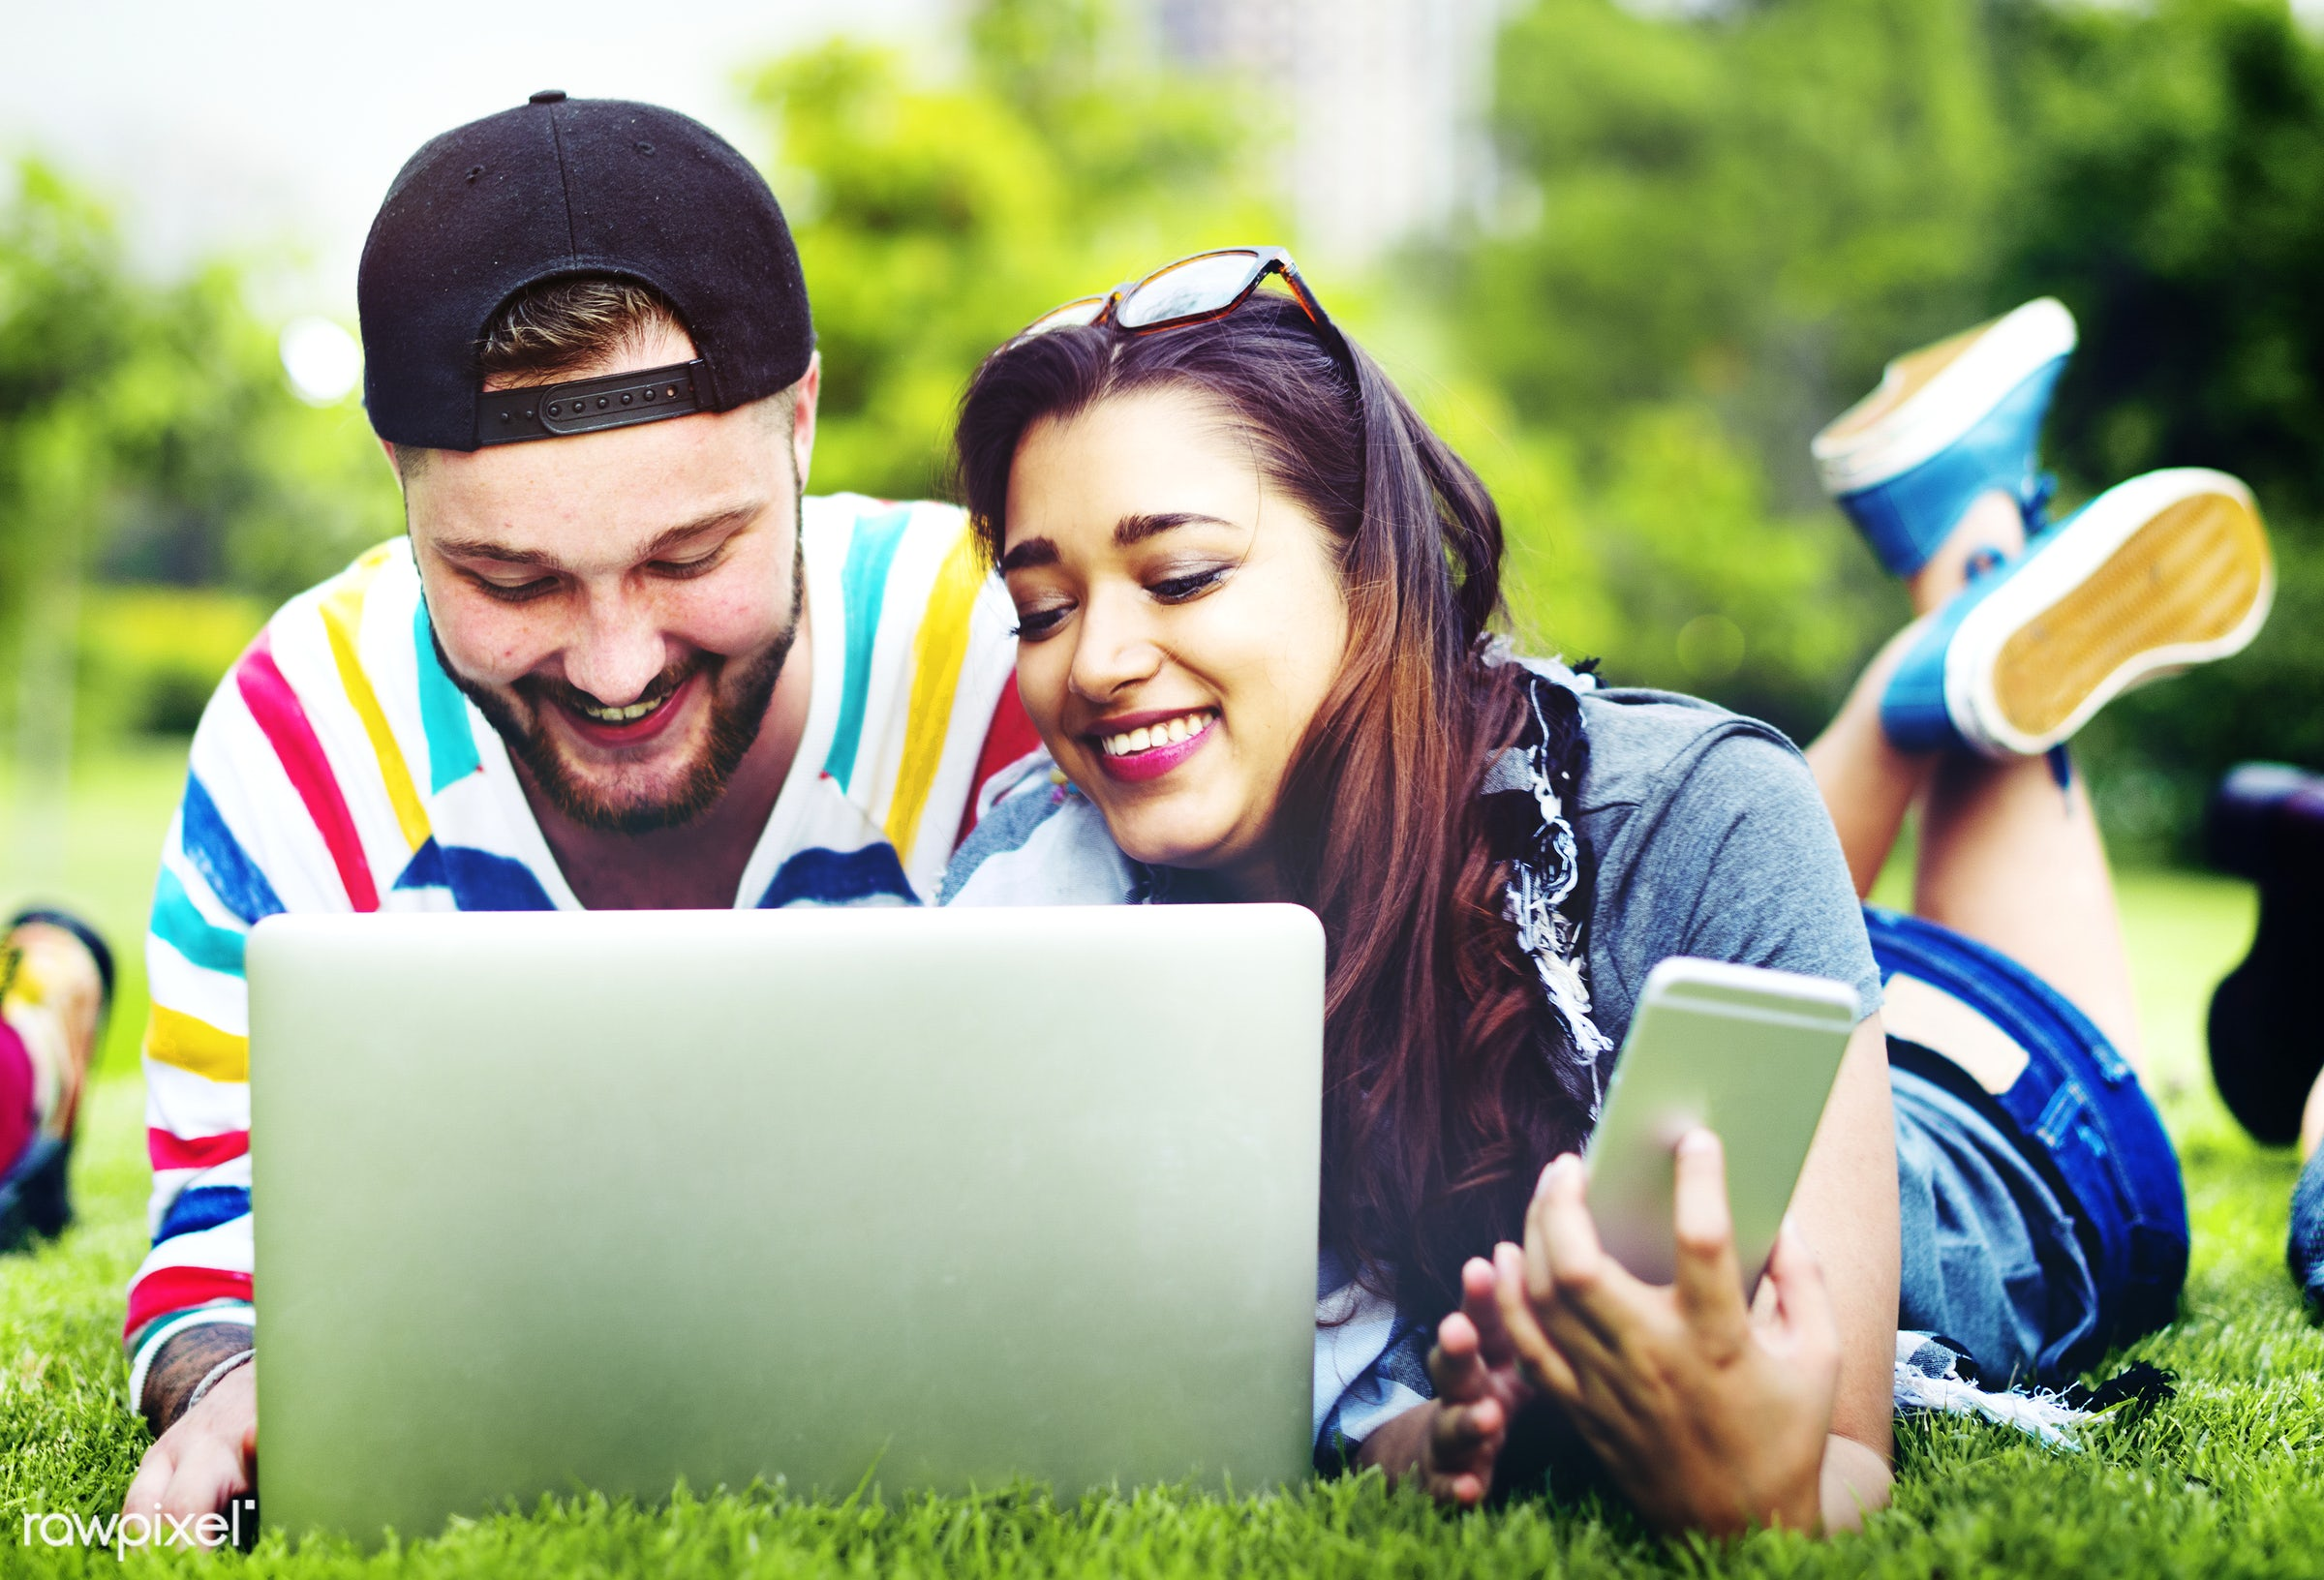 park, grass, pair, indian, two, friends, lying down, casual, outdoors, laptop, couple, devices, cheerful, smiling